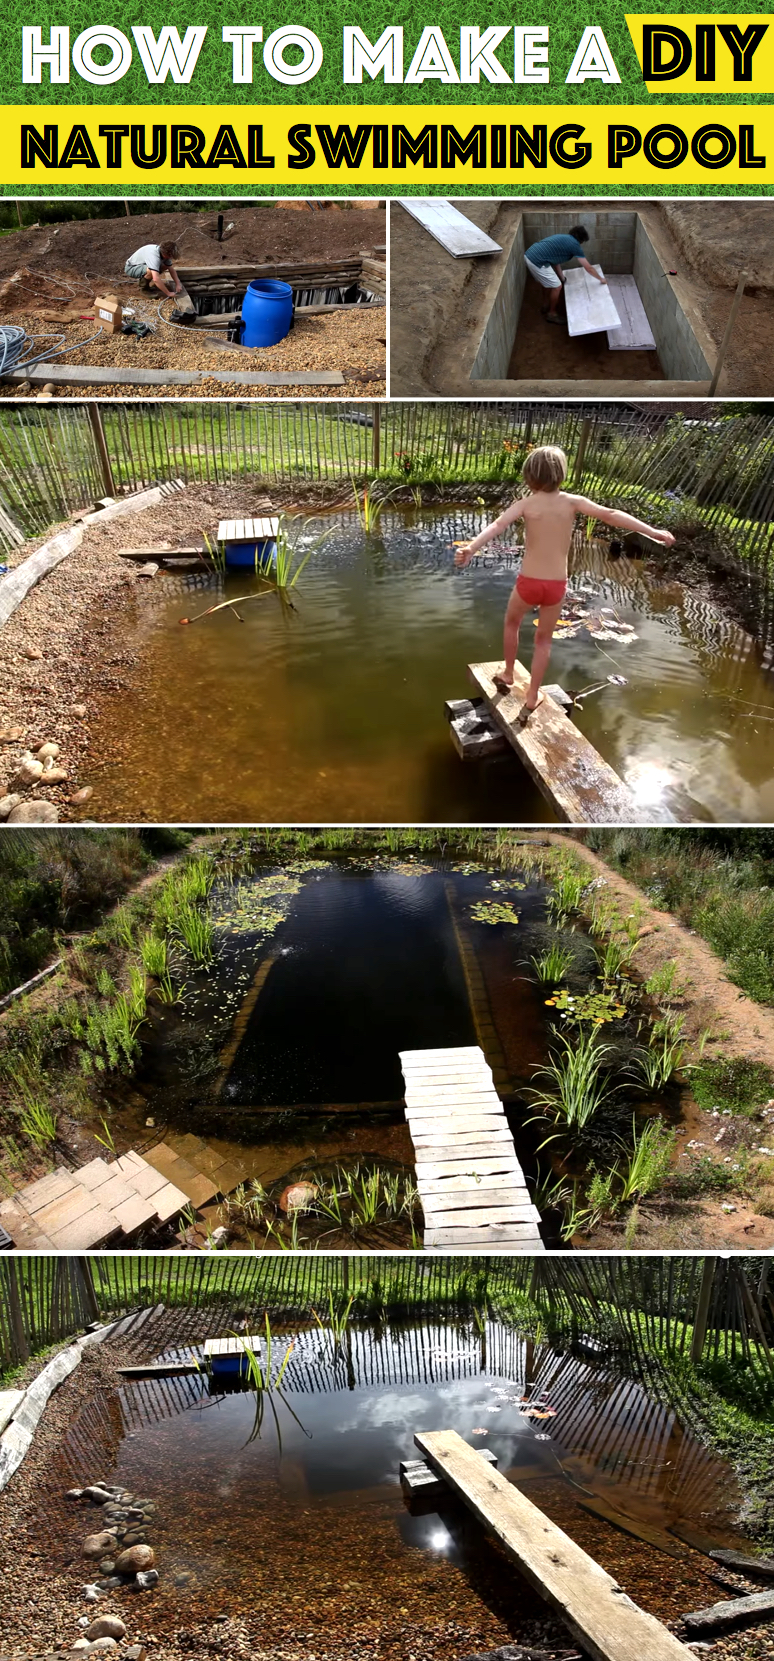 How To Make A Diy Natural Swimming Pool Cute Diy Projects